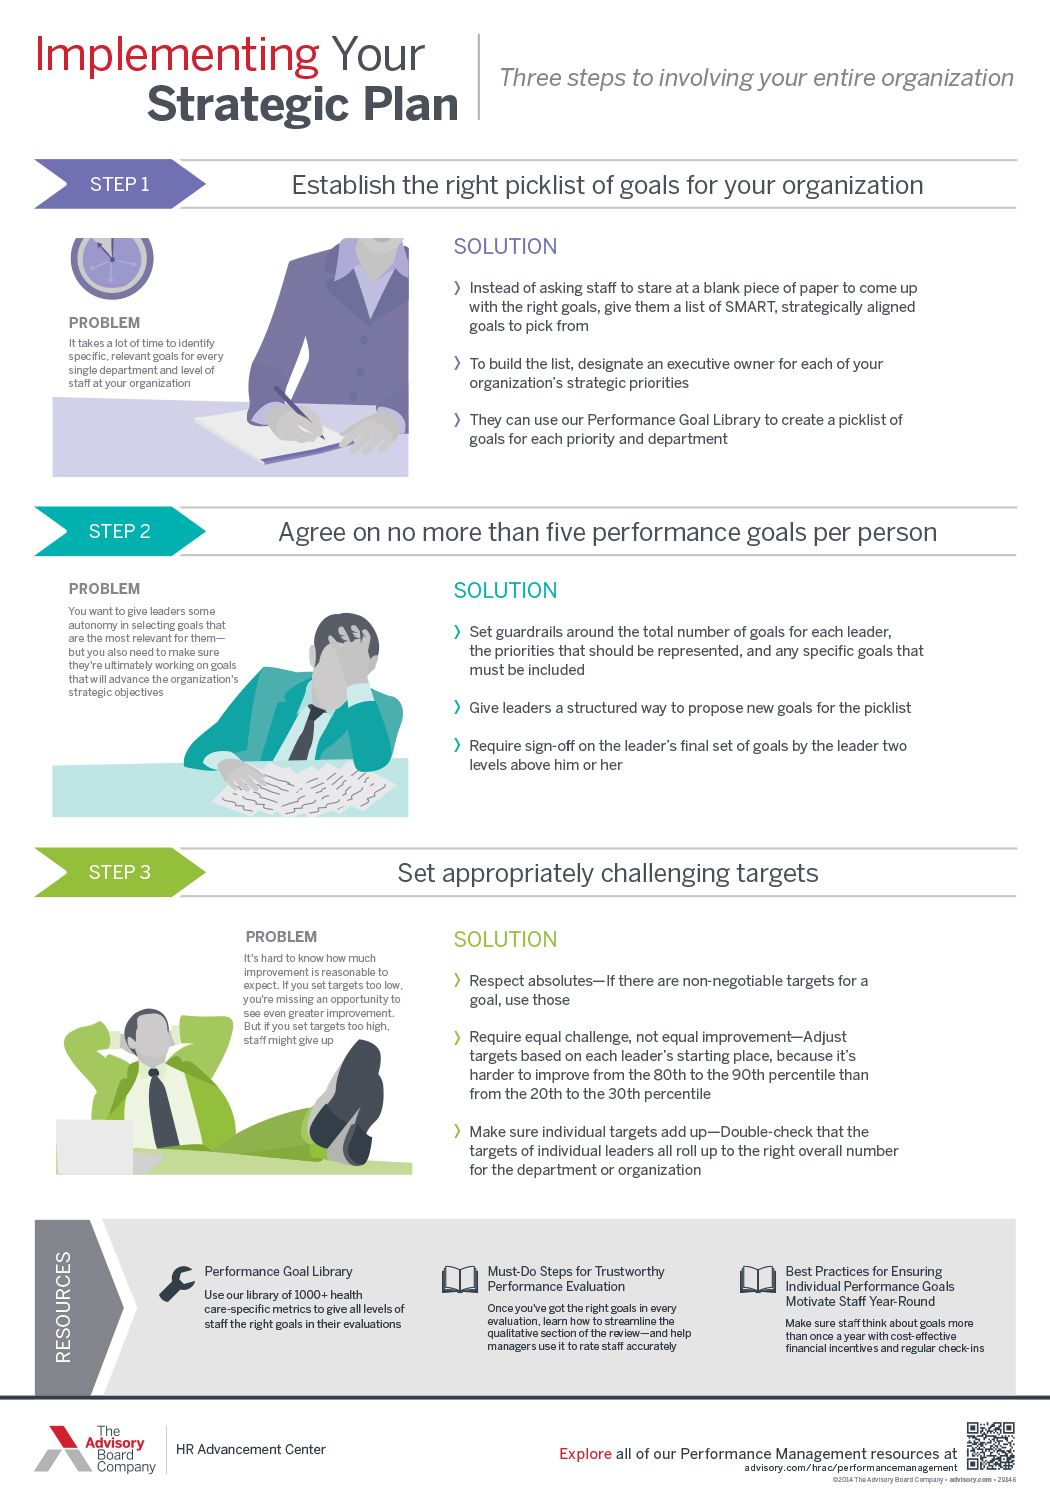 Get 3 steps to focus your workforce on strategy execution